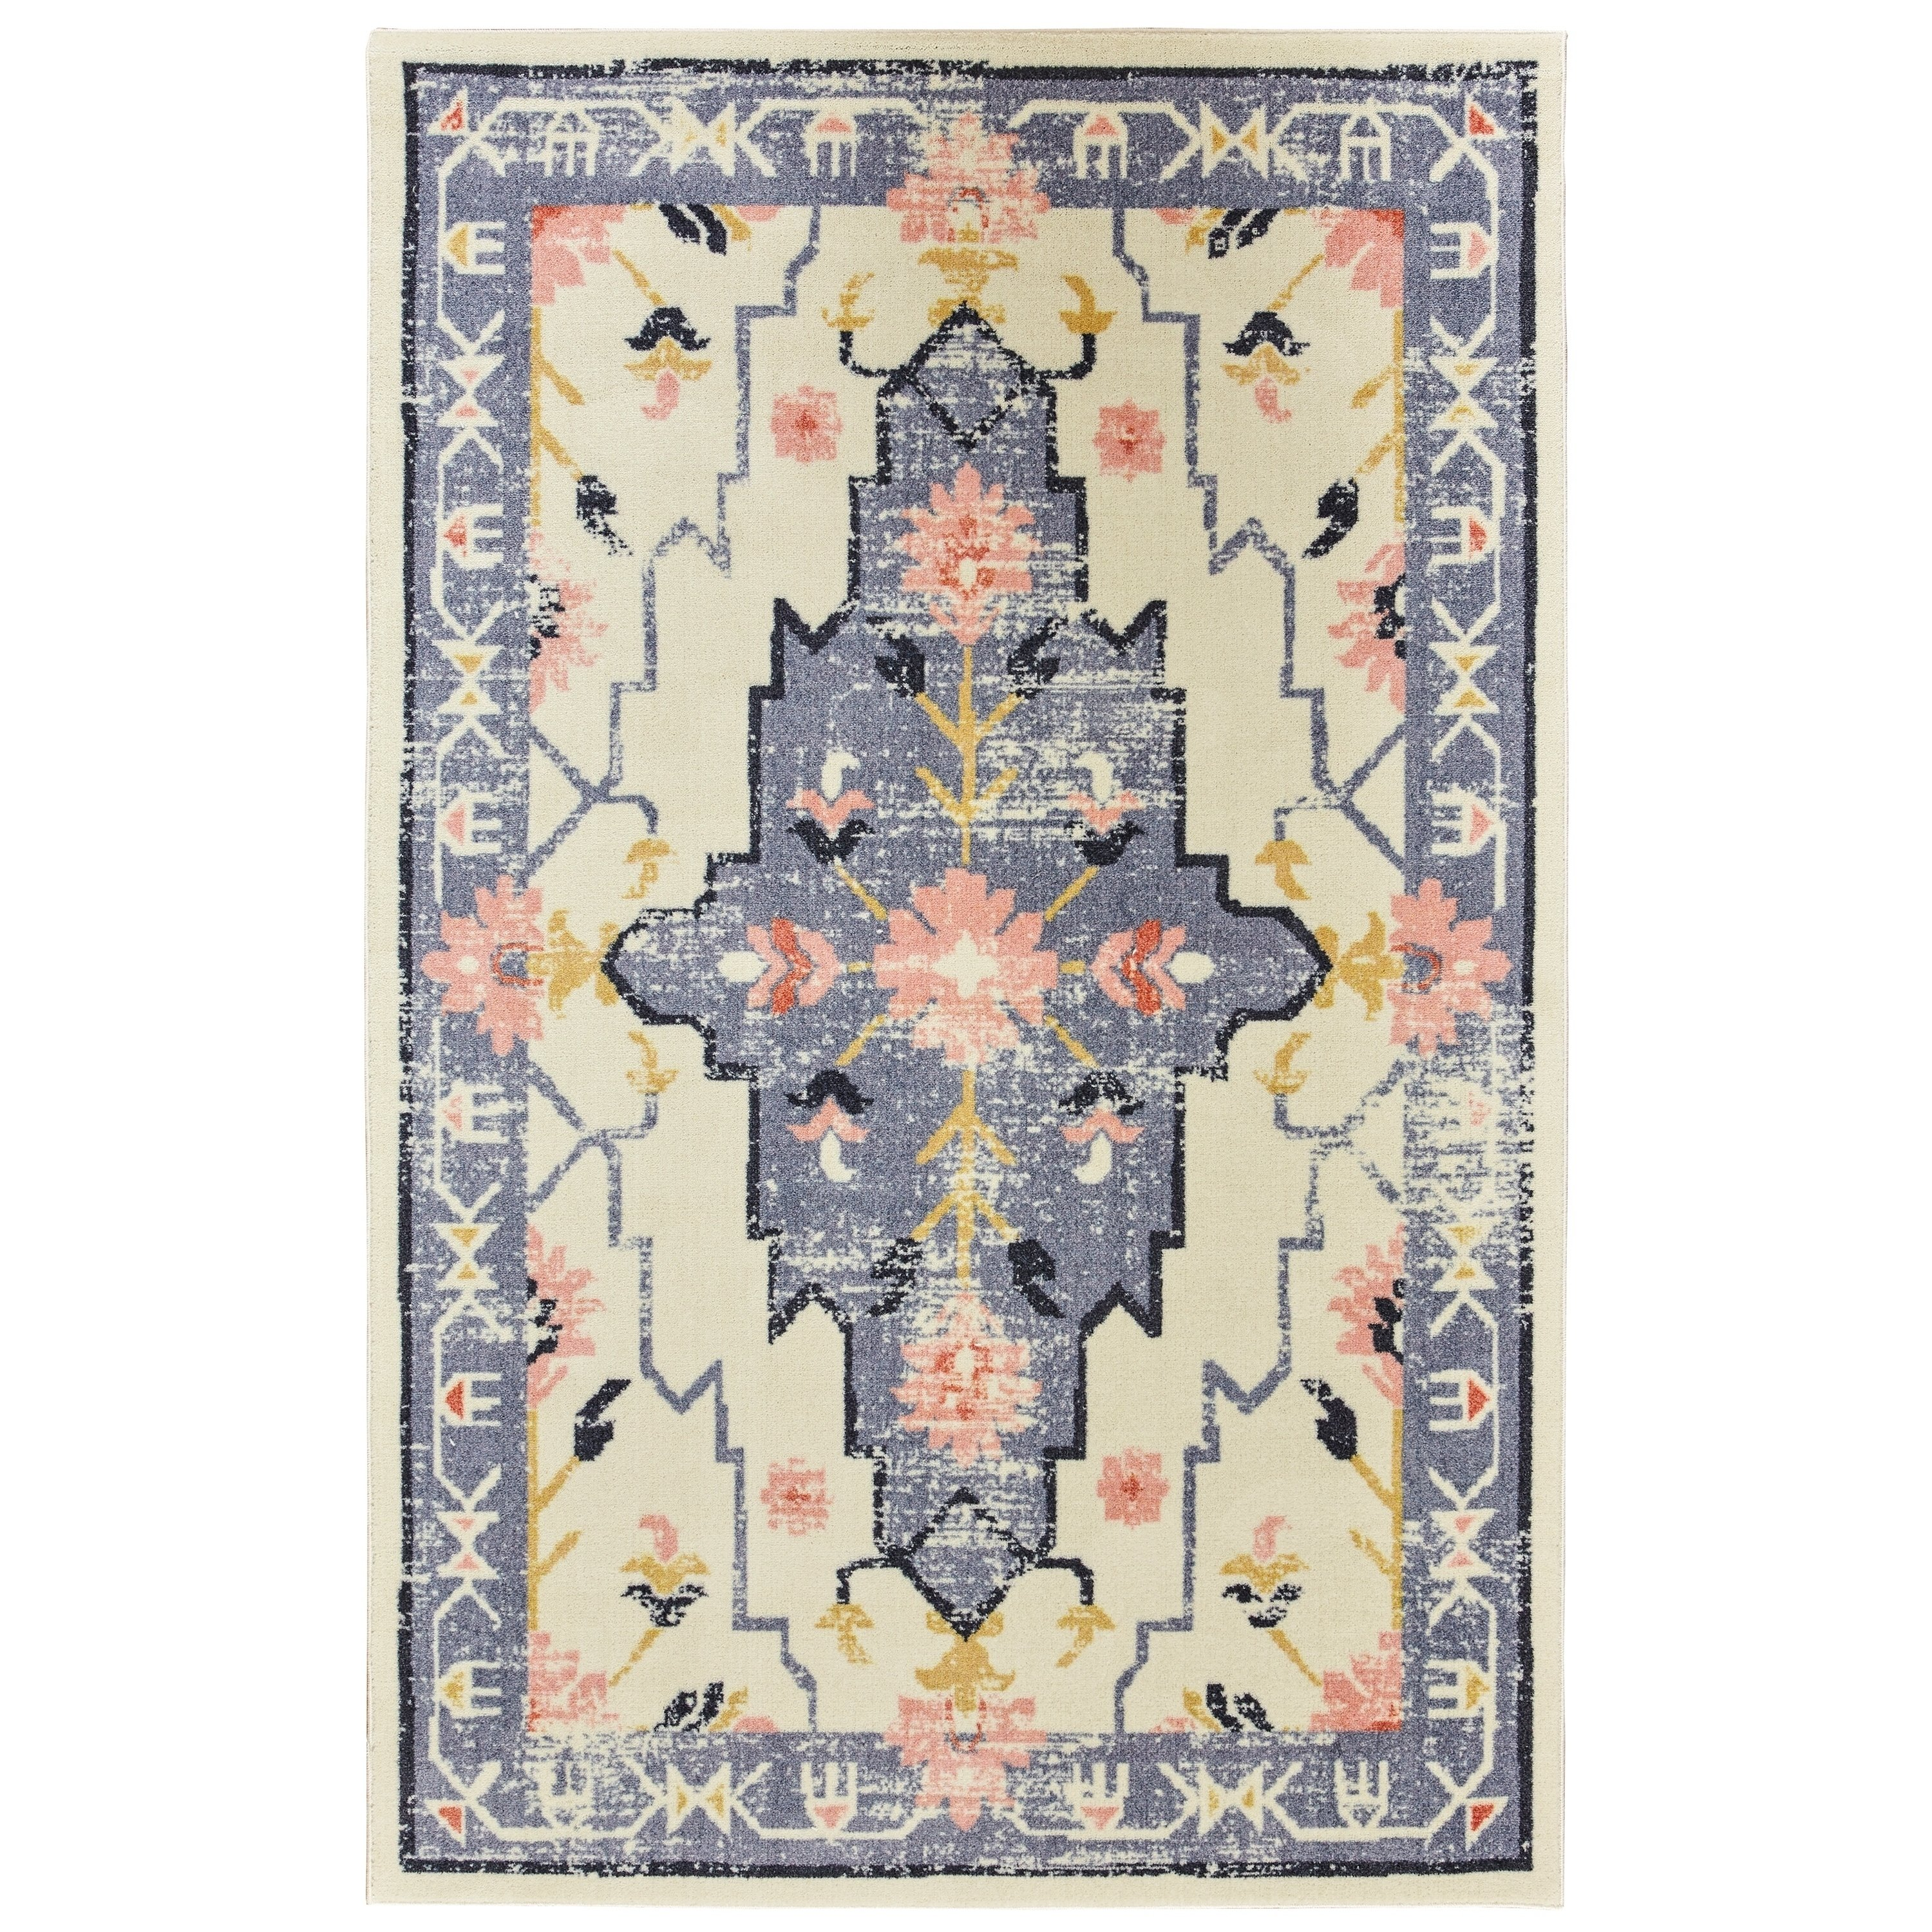 Copper Grove Sierra Vintage Southwestern Area Rug 8 X 10 Cream Ivory Products In 2019 Rugs Area Rugs Modern Area Rugs